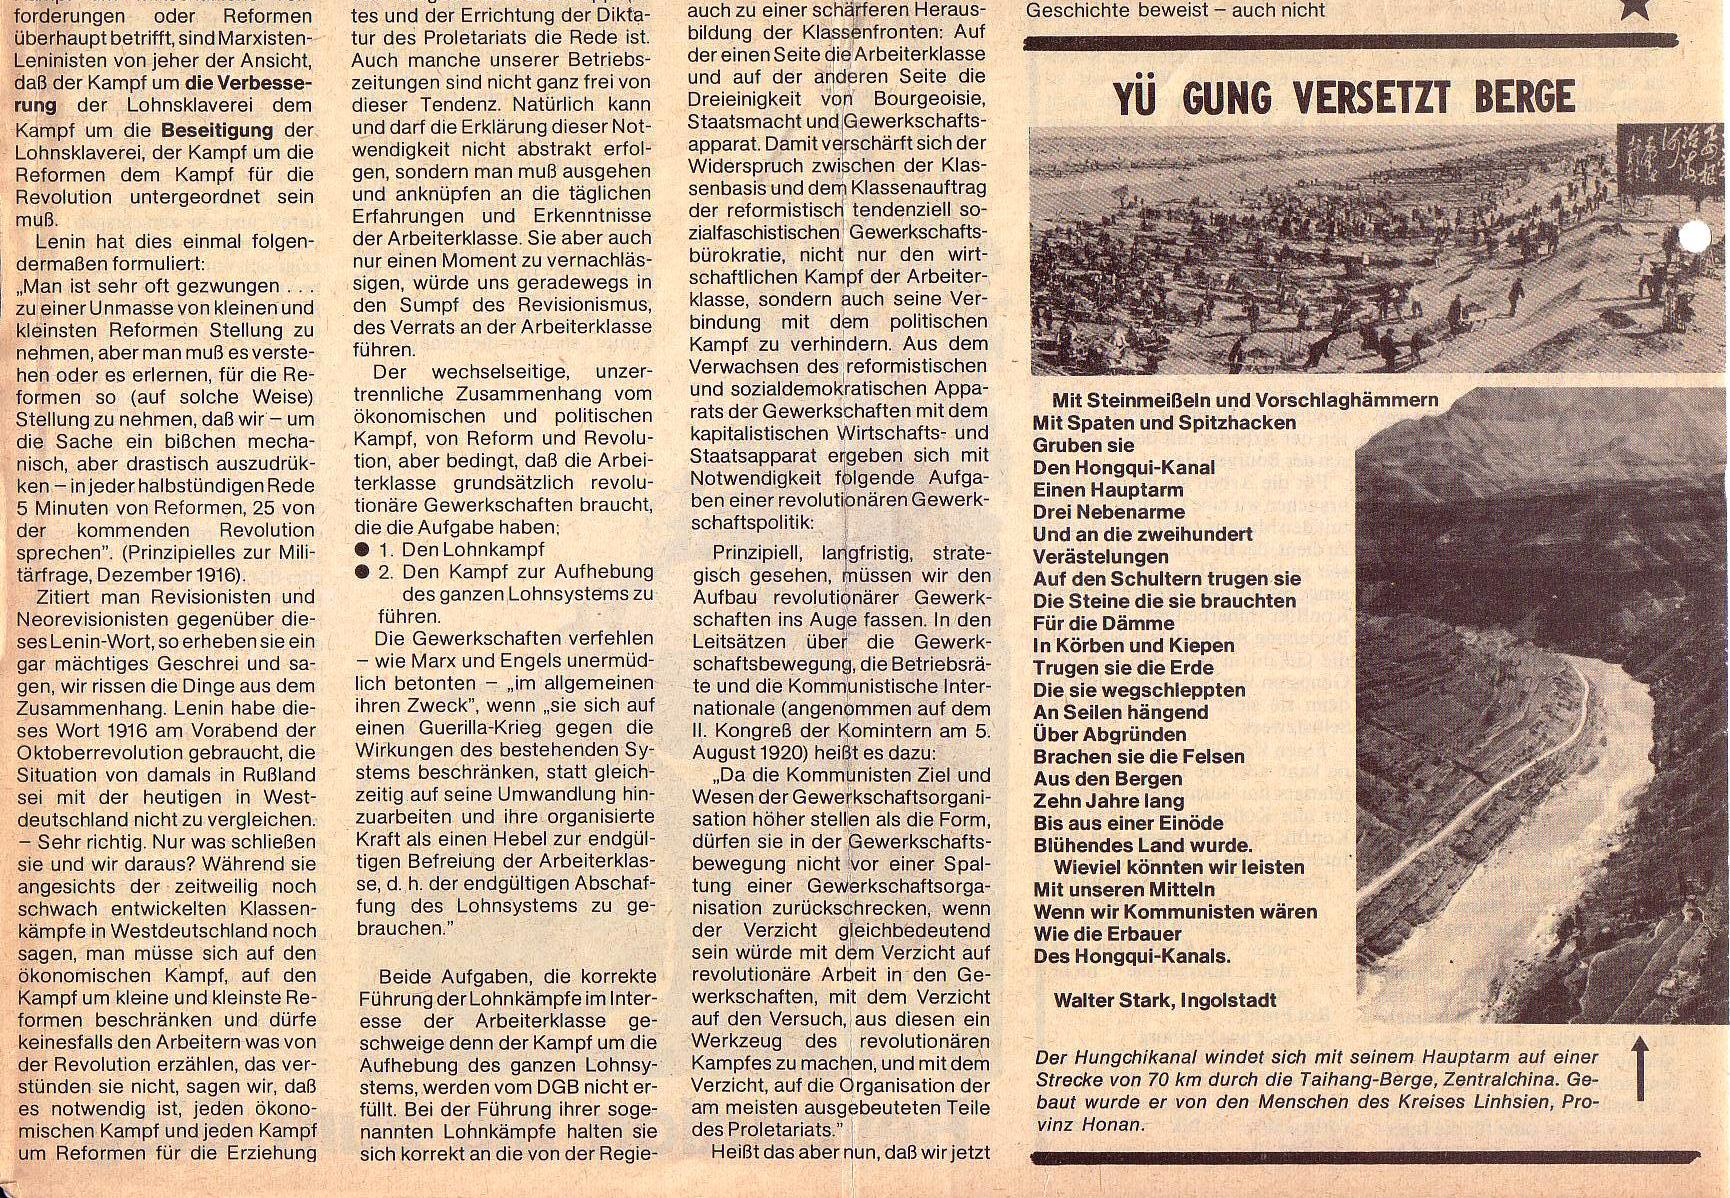 Roter Morgen, 5. Jg., August 1971, Nr. 8, Seite 6b